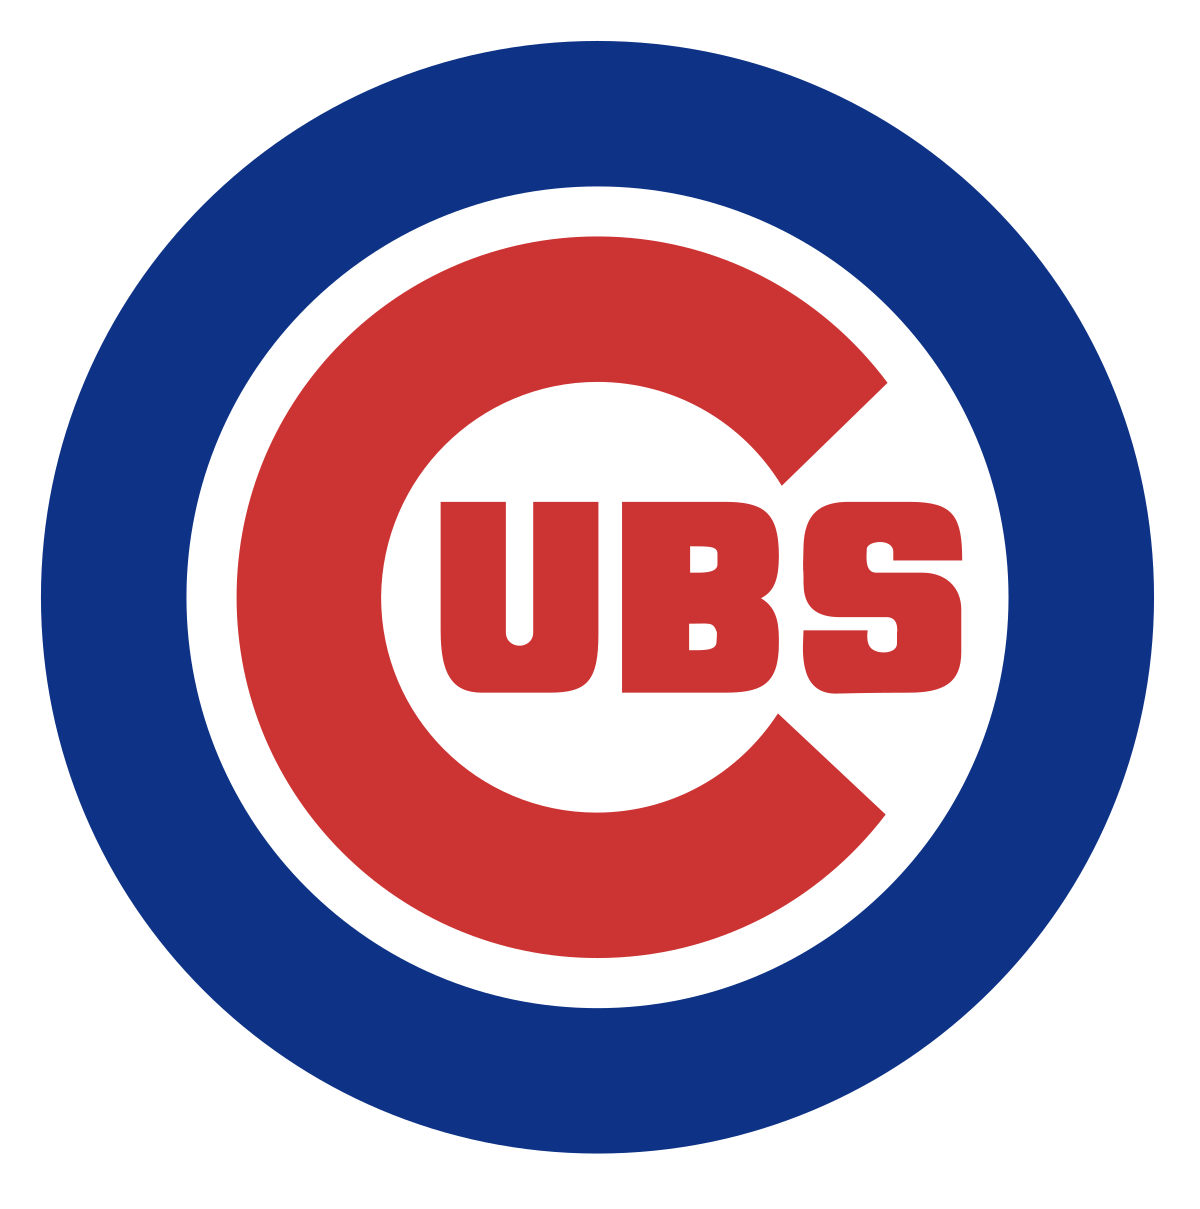 Handcuff clipart 8th. Chicago cubs wikipedia